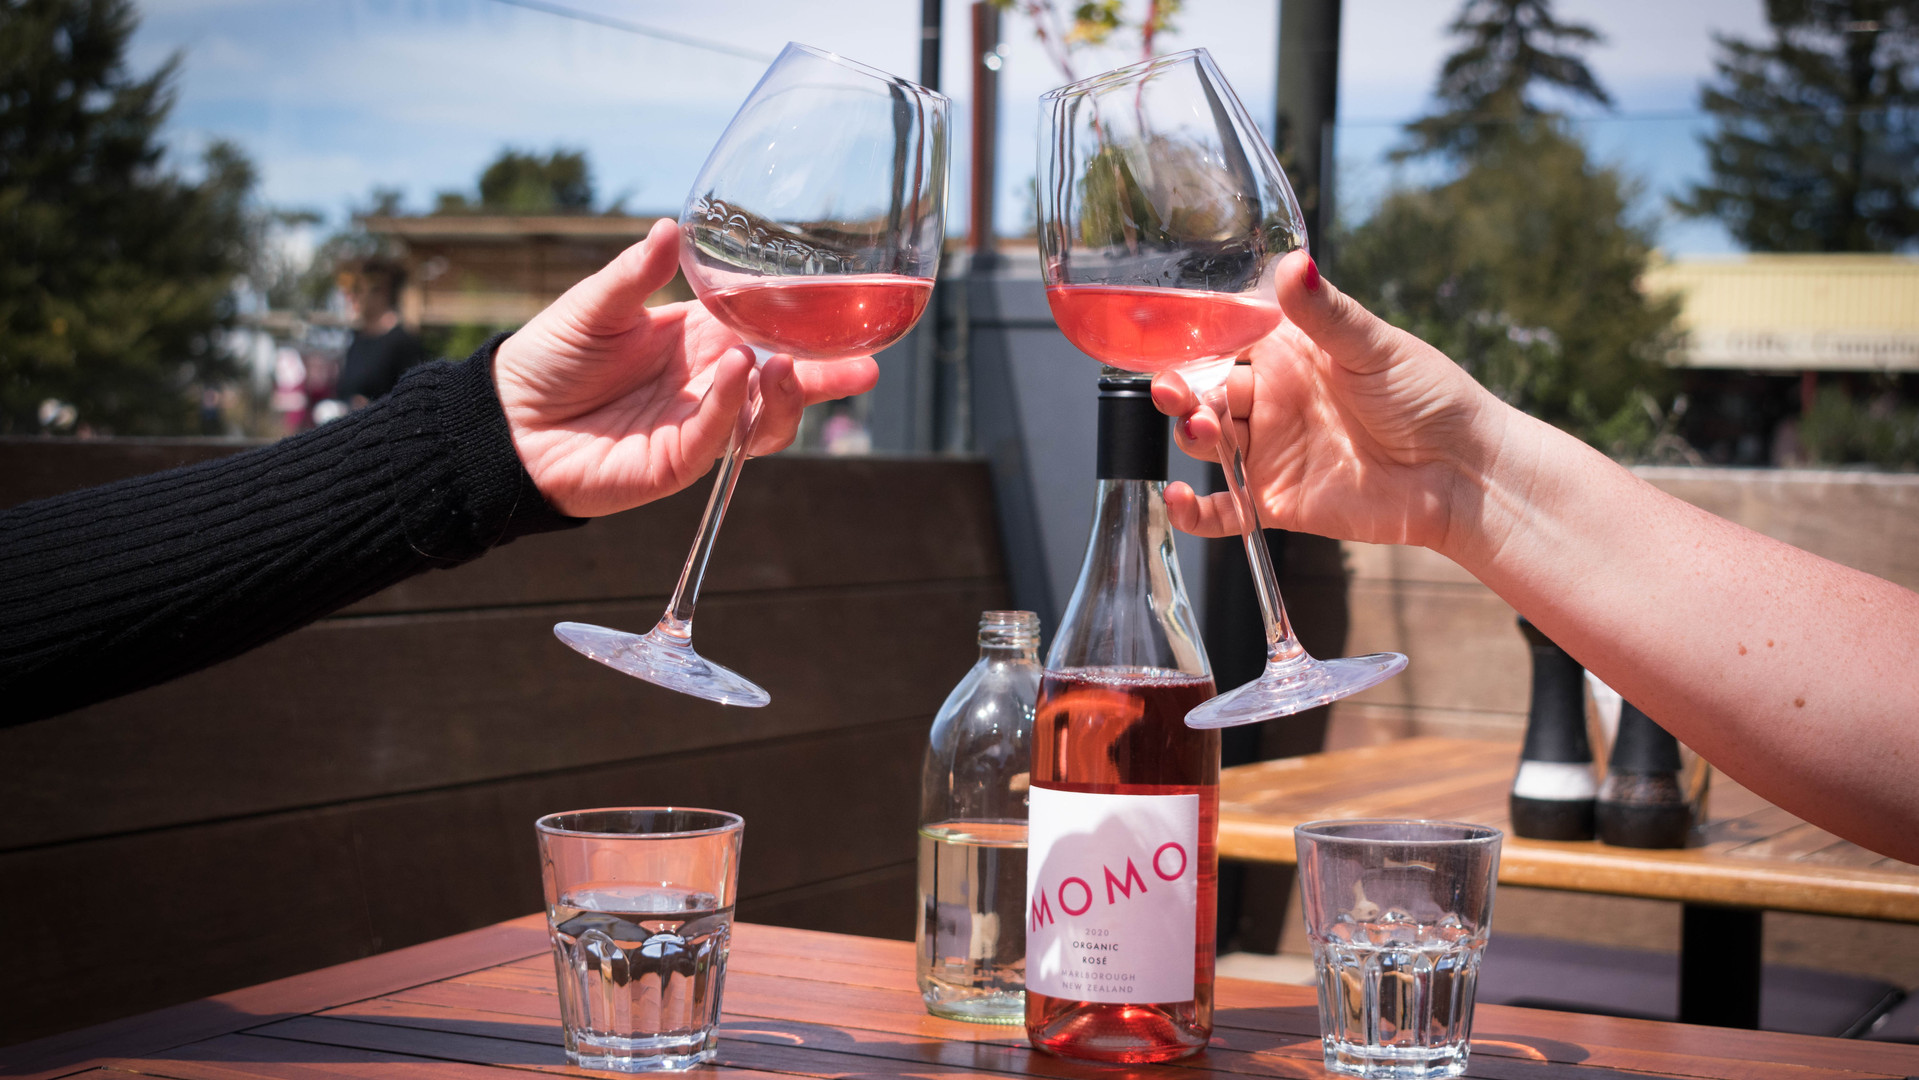 Our Organic MOMO wines